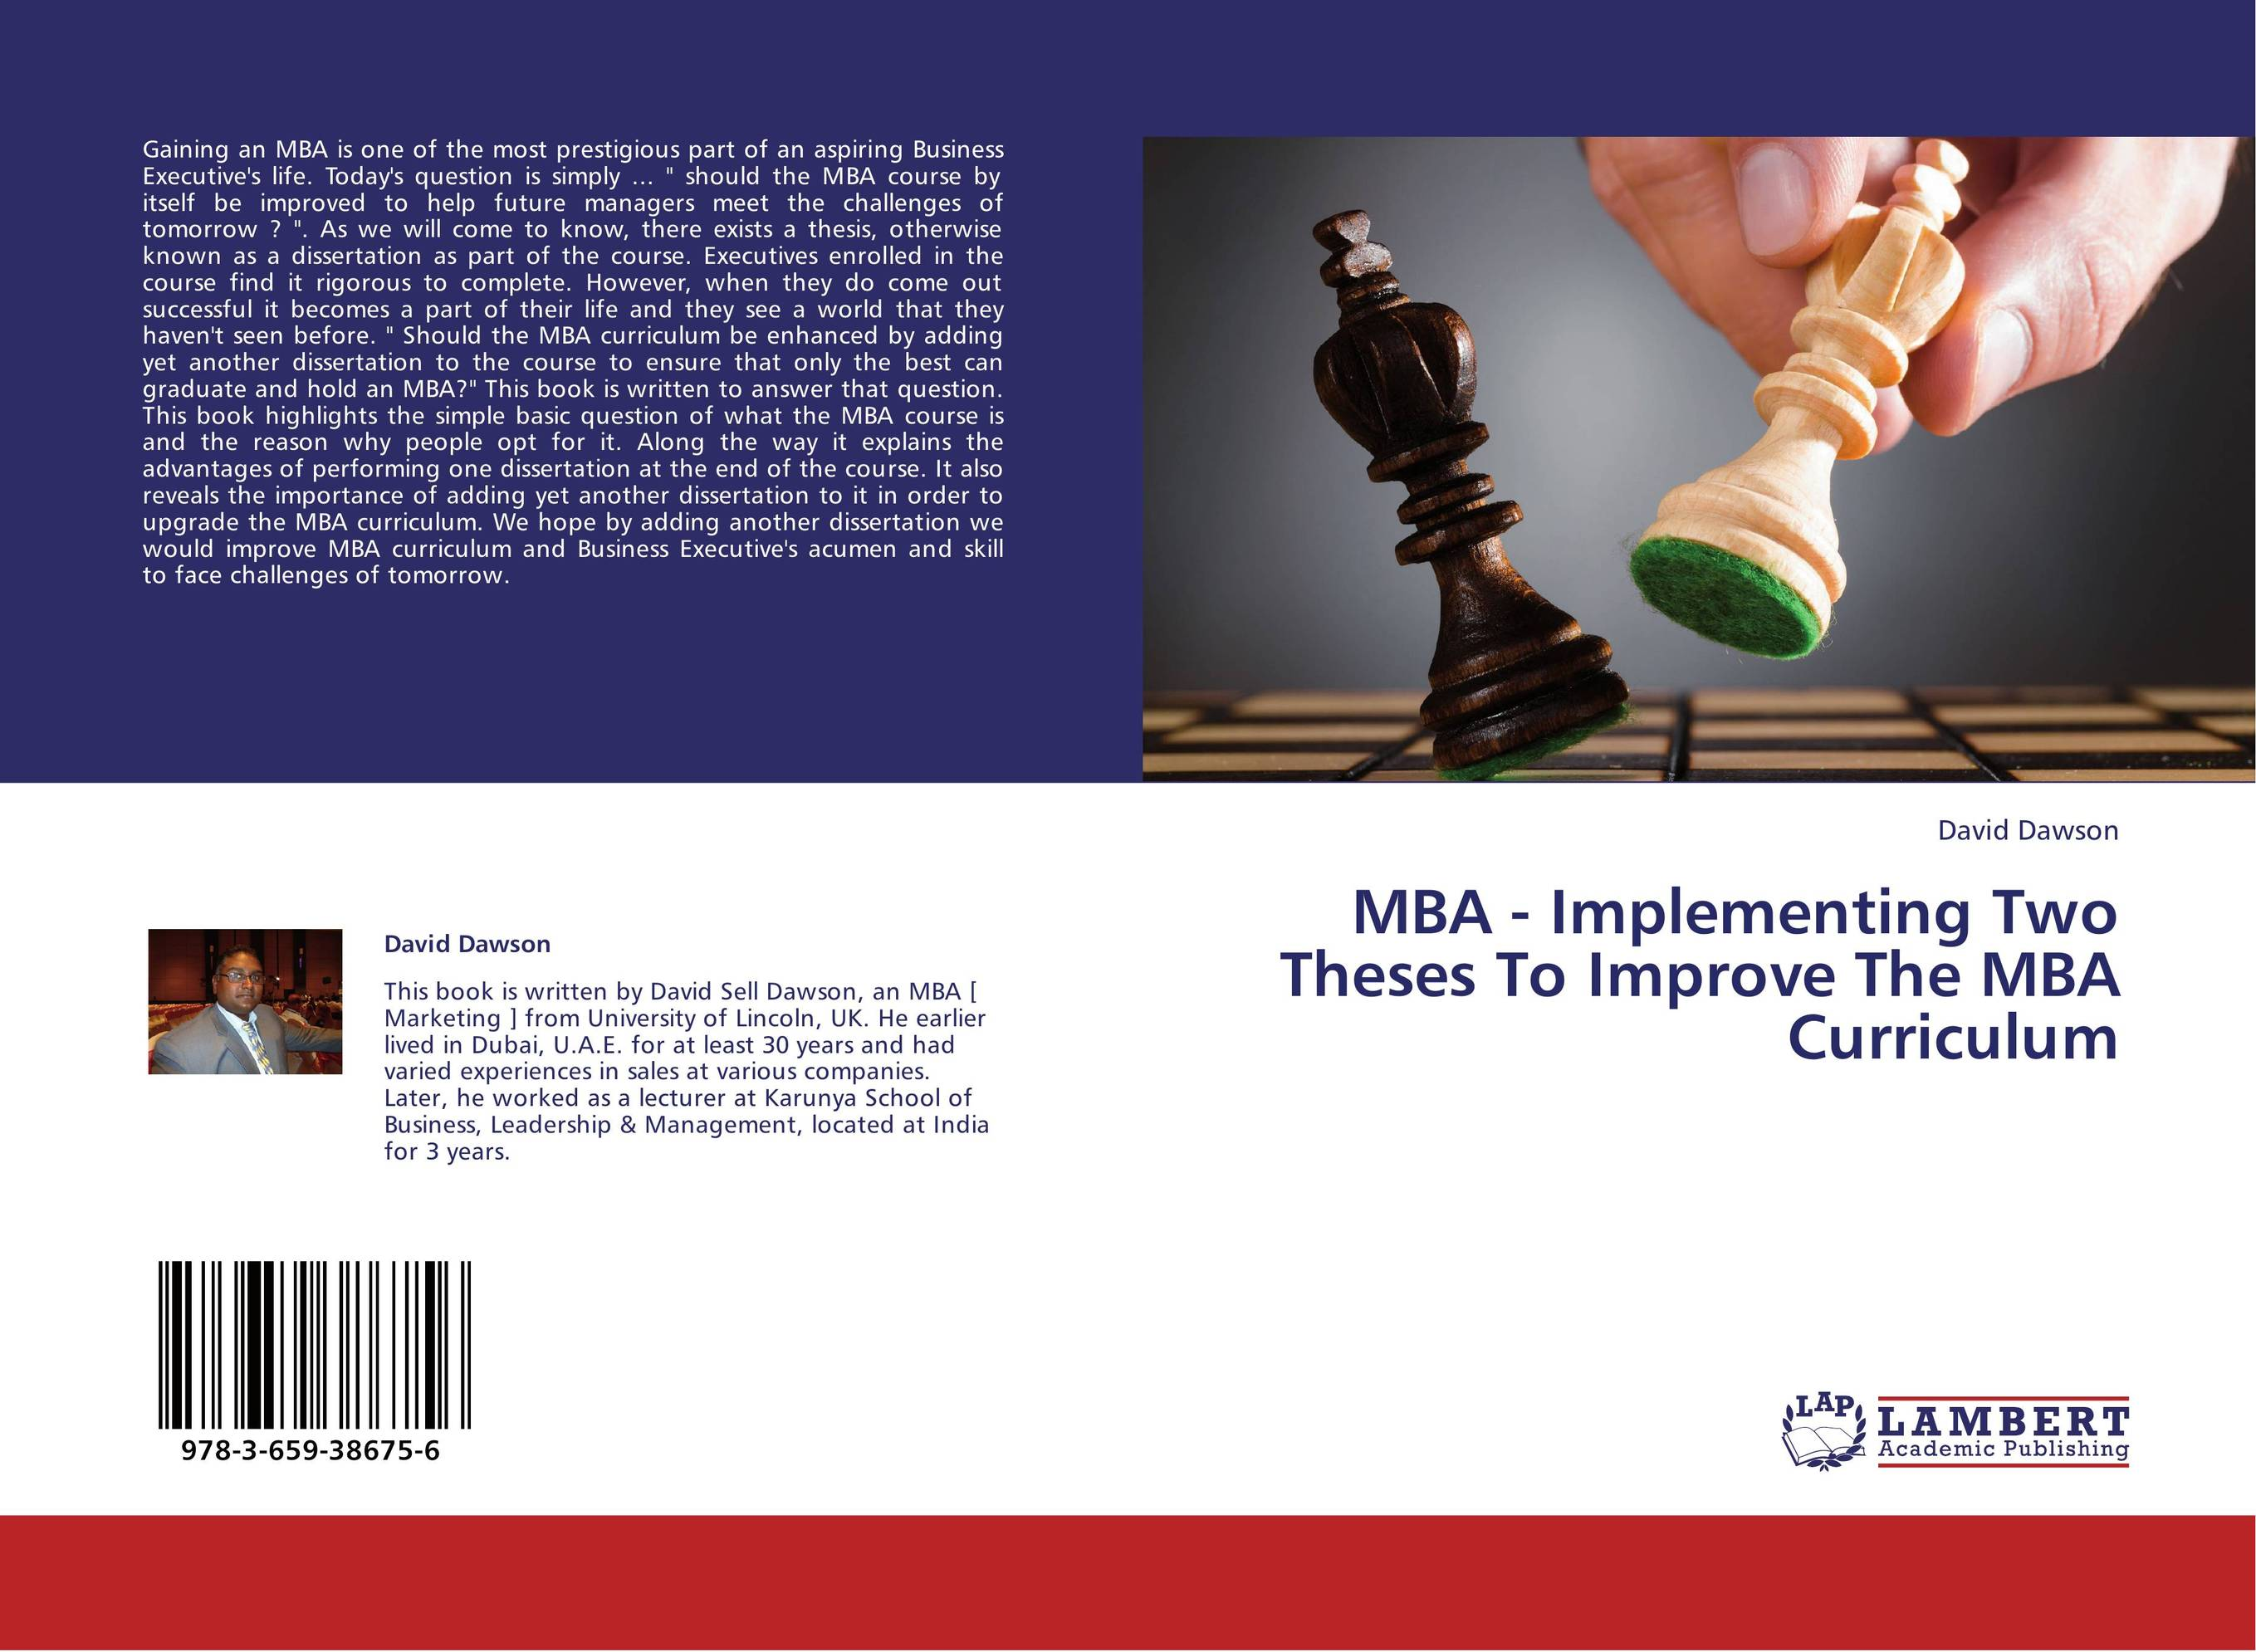 index of dissertations marketing mba Best 12 topics for mba marketing disseration | mba wwwmbadissertationorg/mba-marketing-dissertation-topics get professional help in writing your marketing mba.